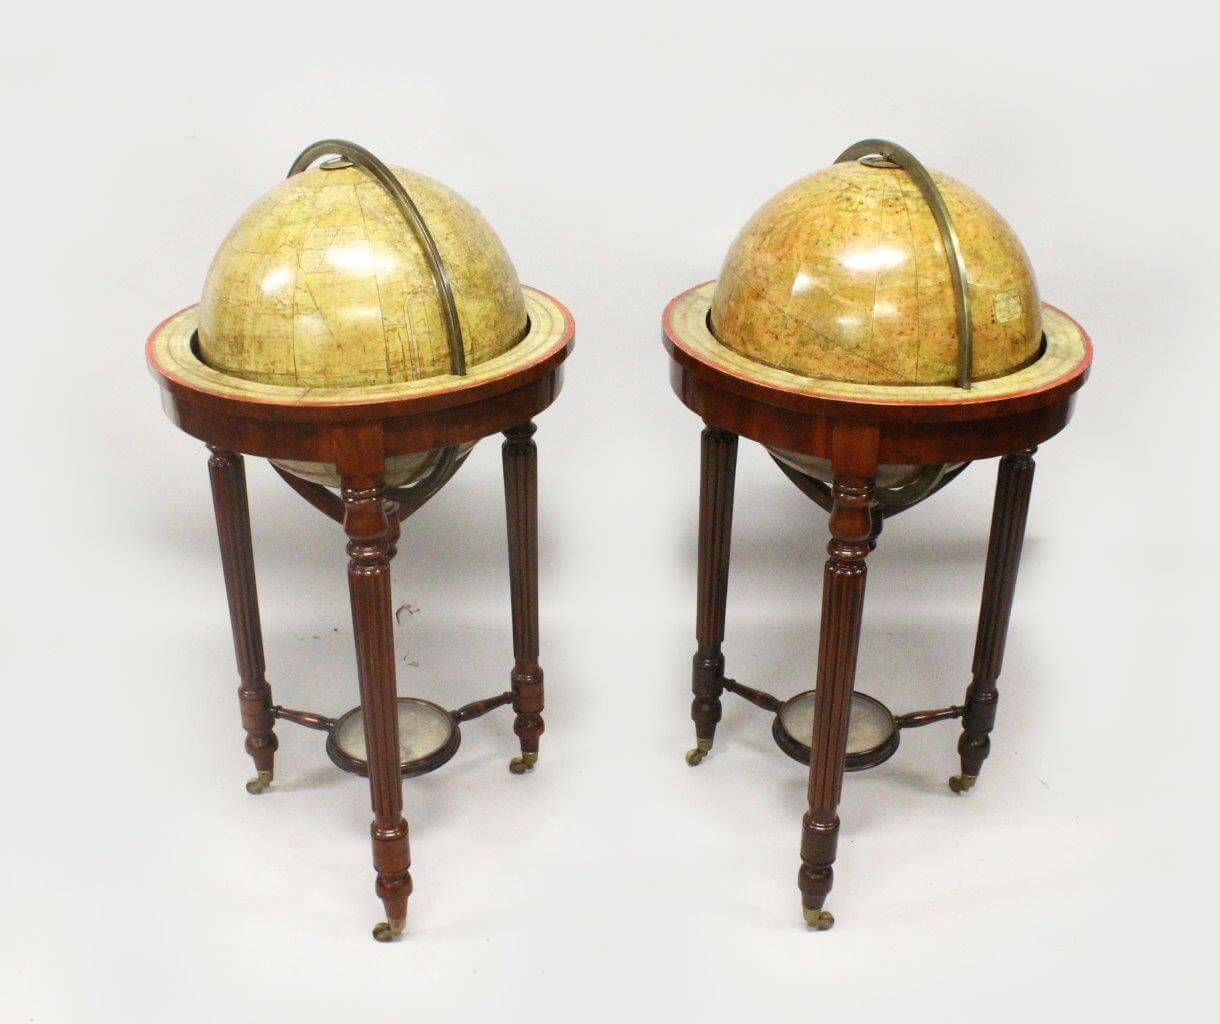 A Very Good Pair of Eighteen Inch Malby & Sons Terrestrial and Celestial Globes/Fine Auctioneers & Valuers